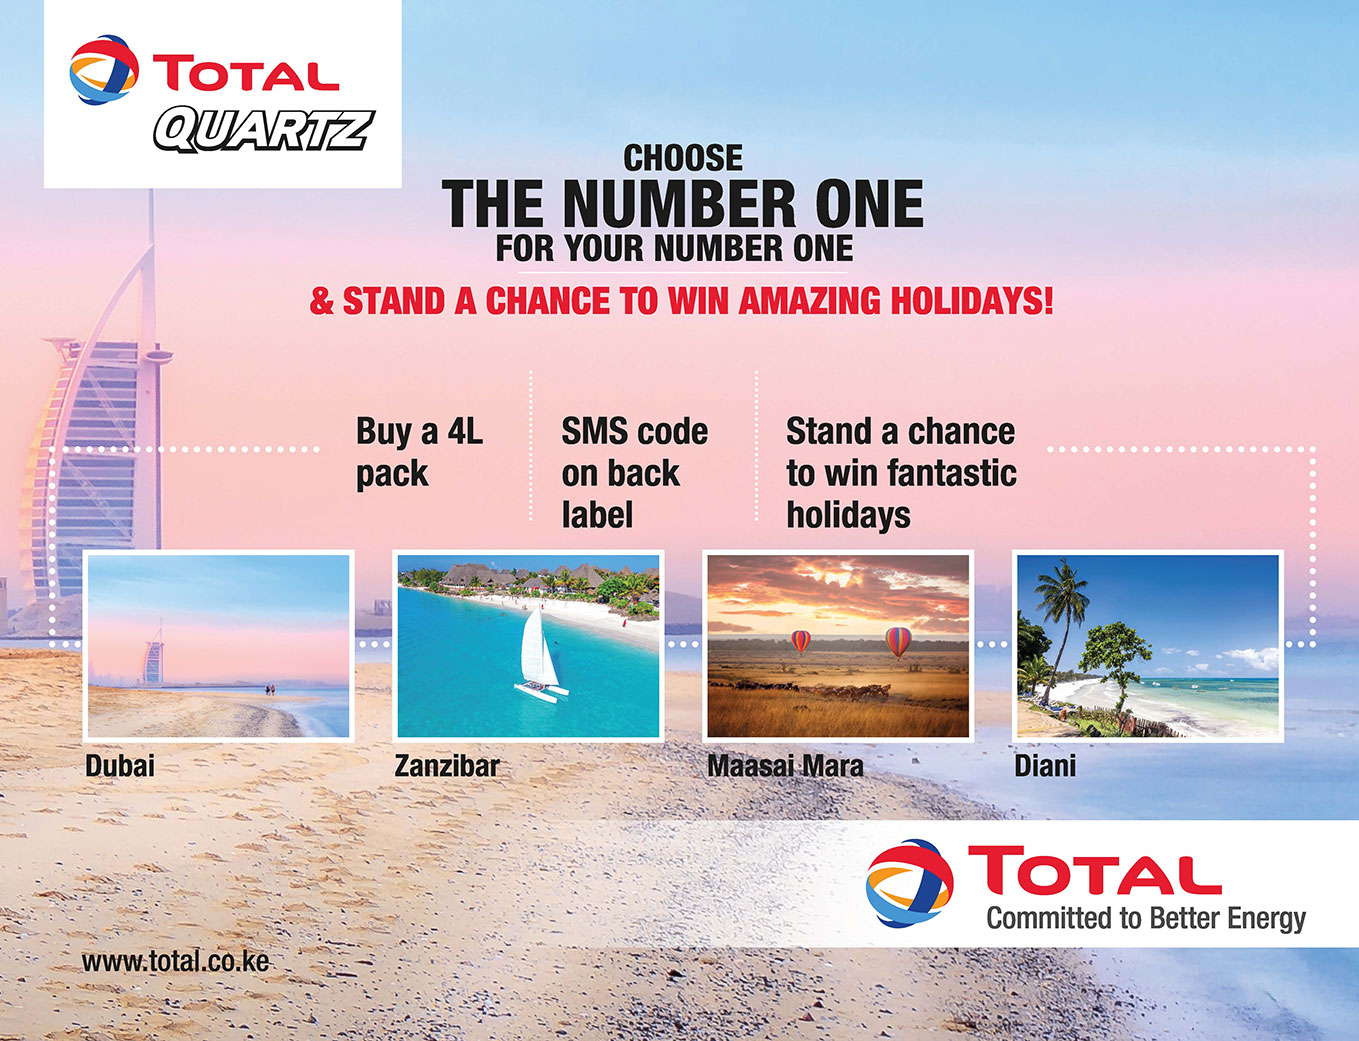 total-quartz-the-number-one-for-your-number-one-2.jpg